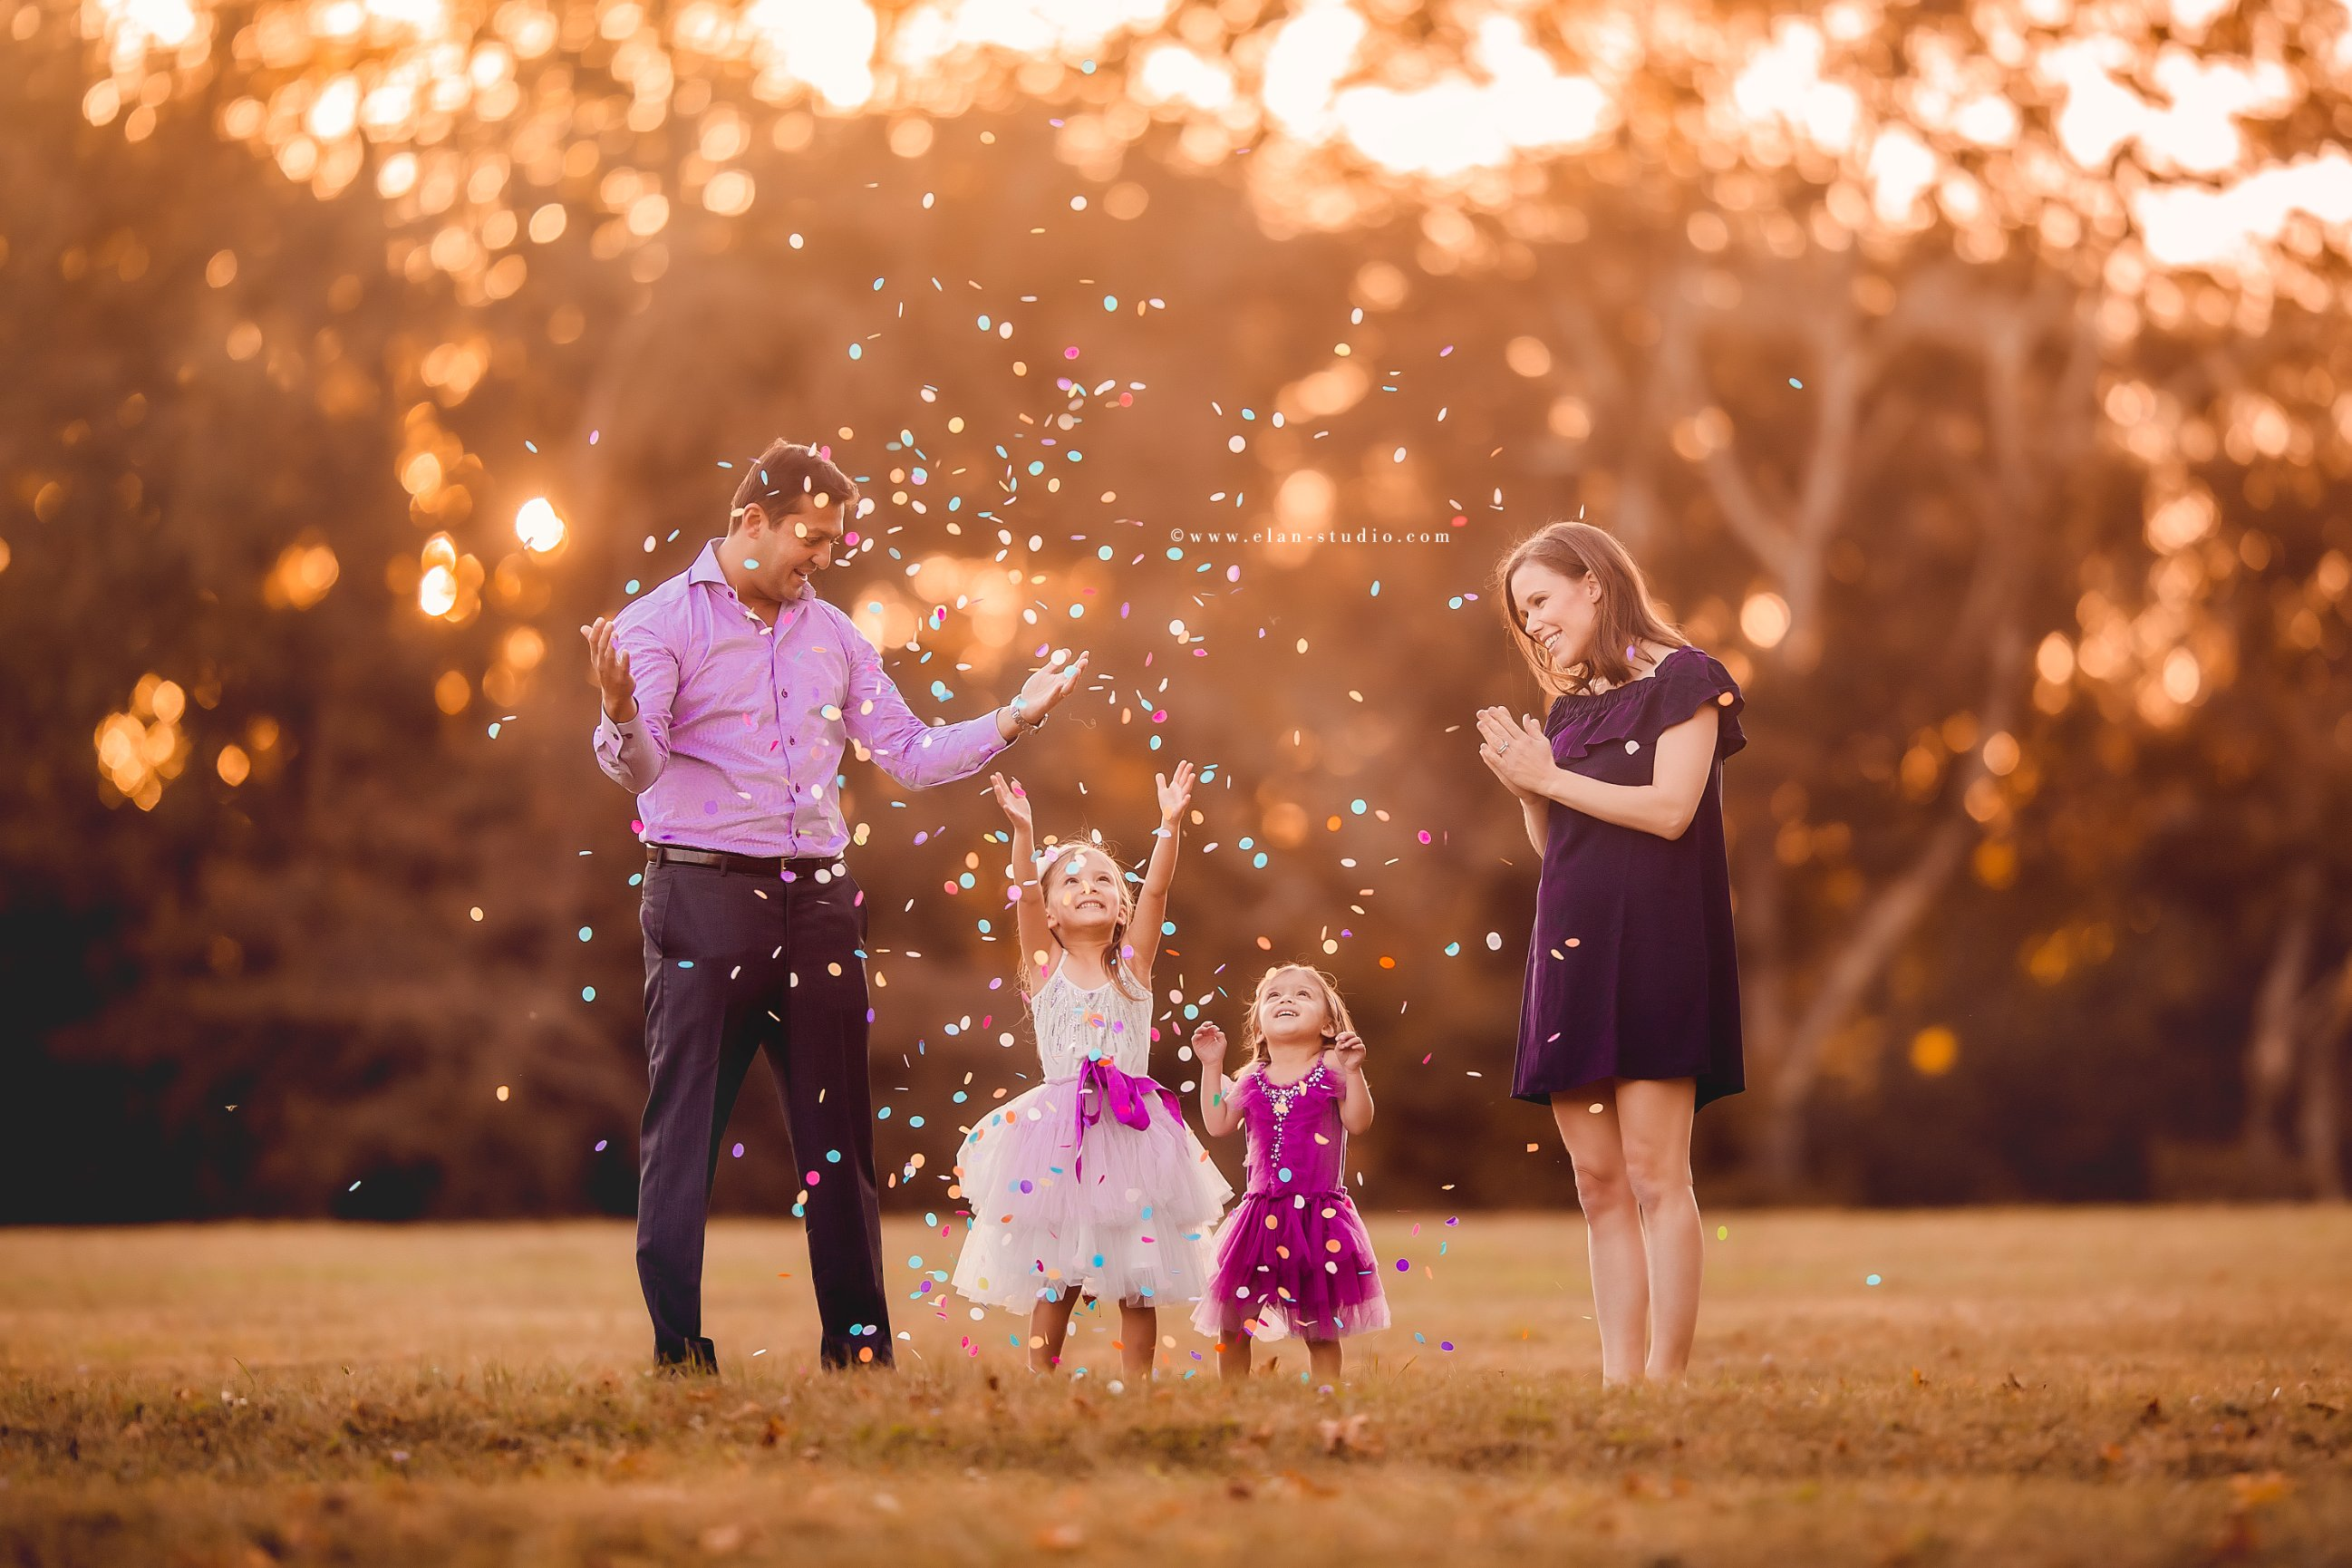 parents with two little girls throwing confetti